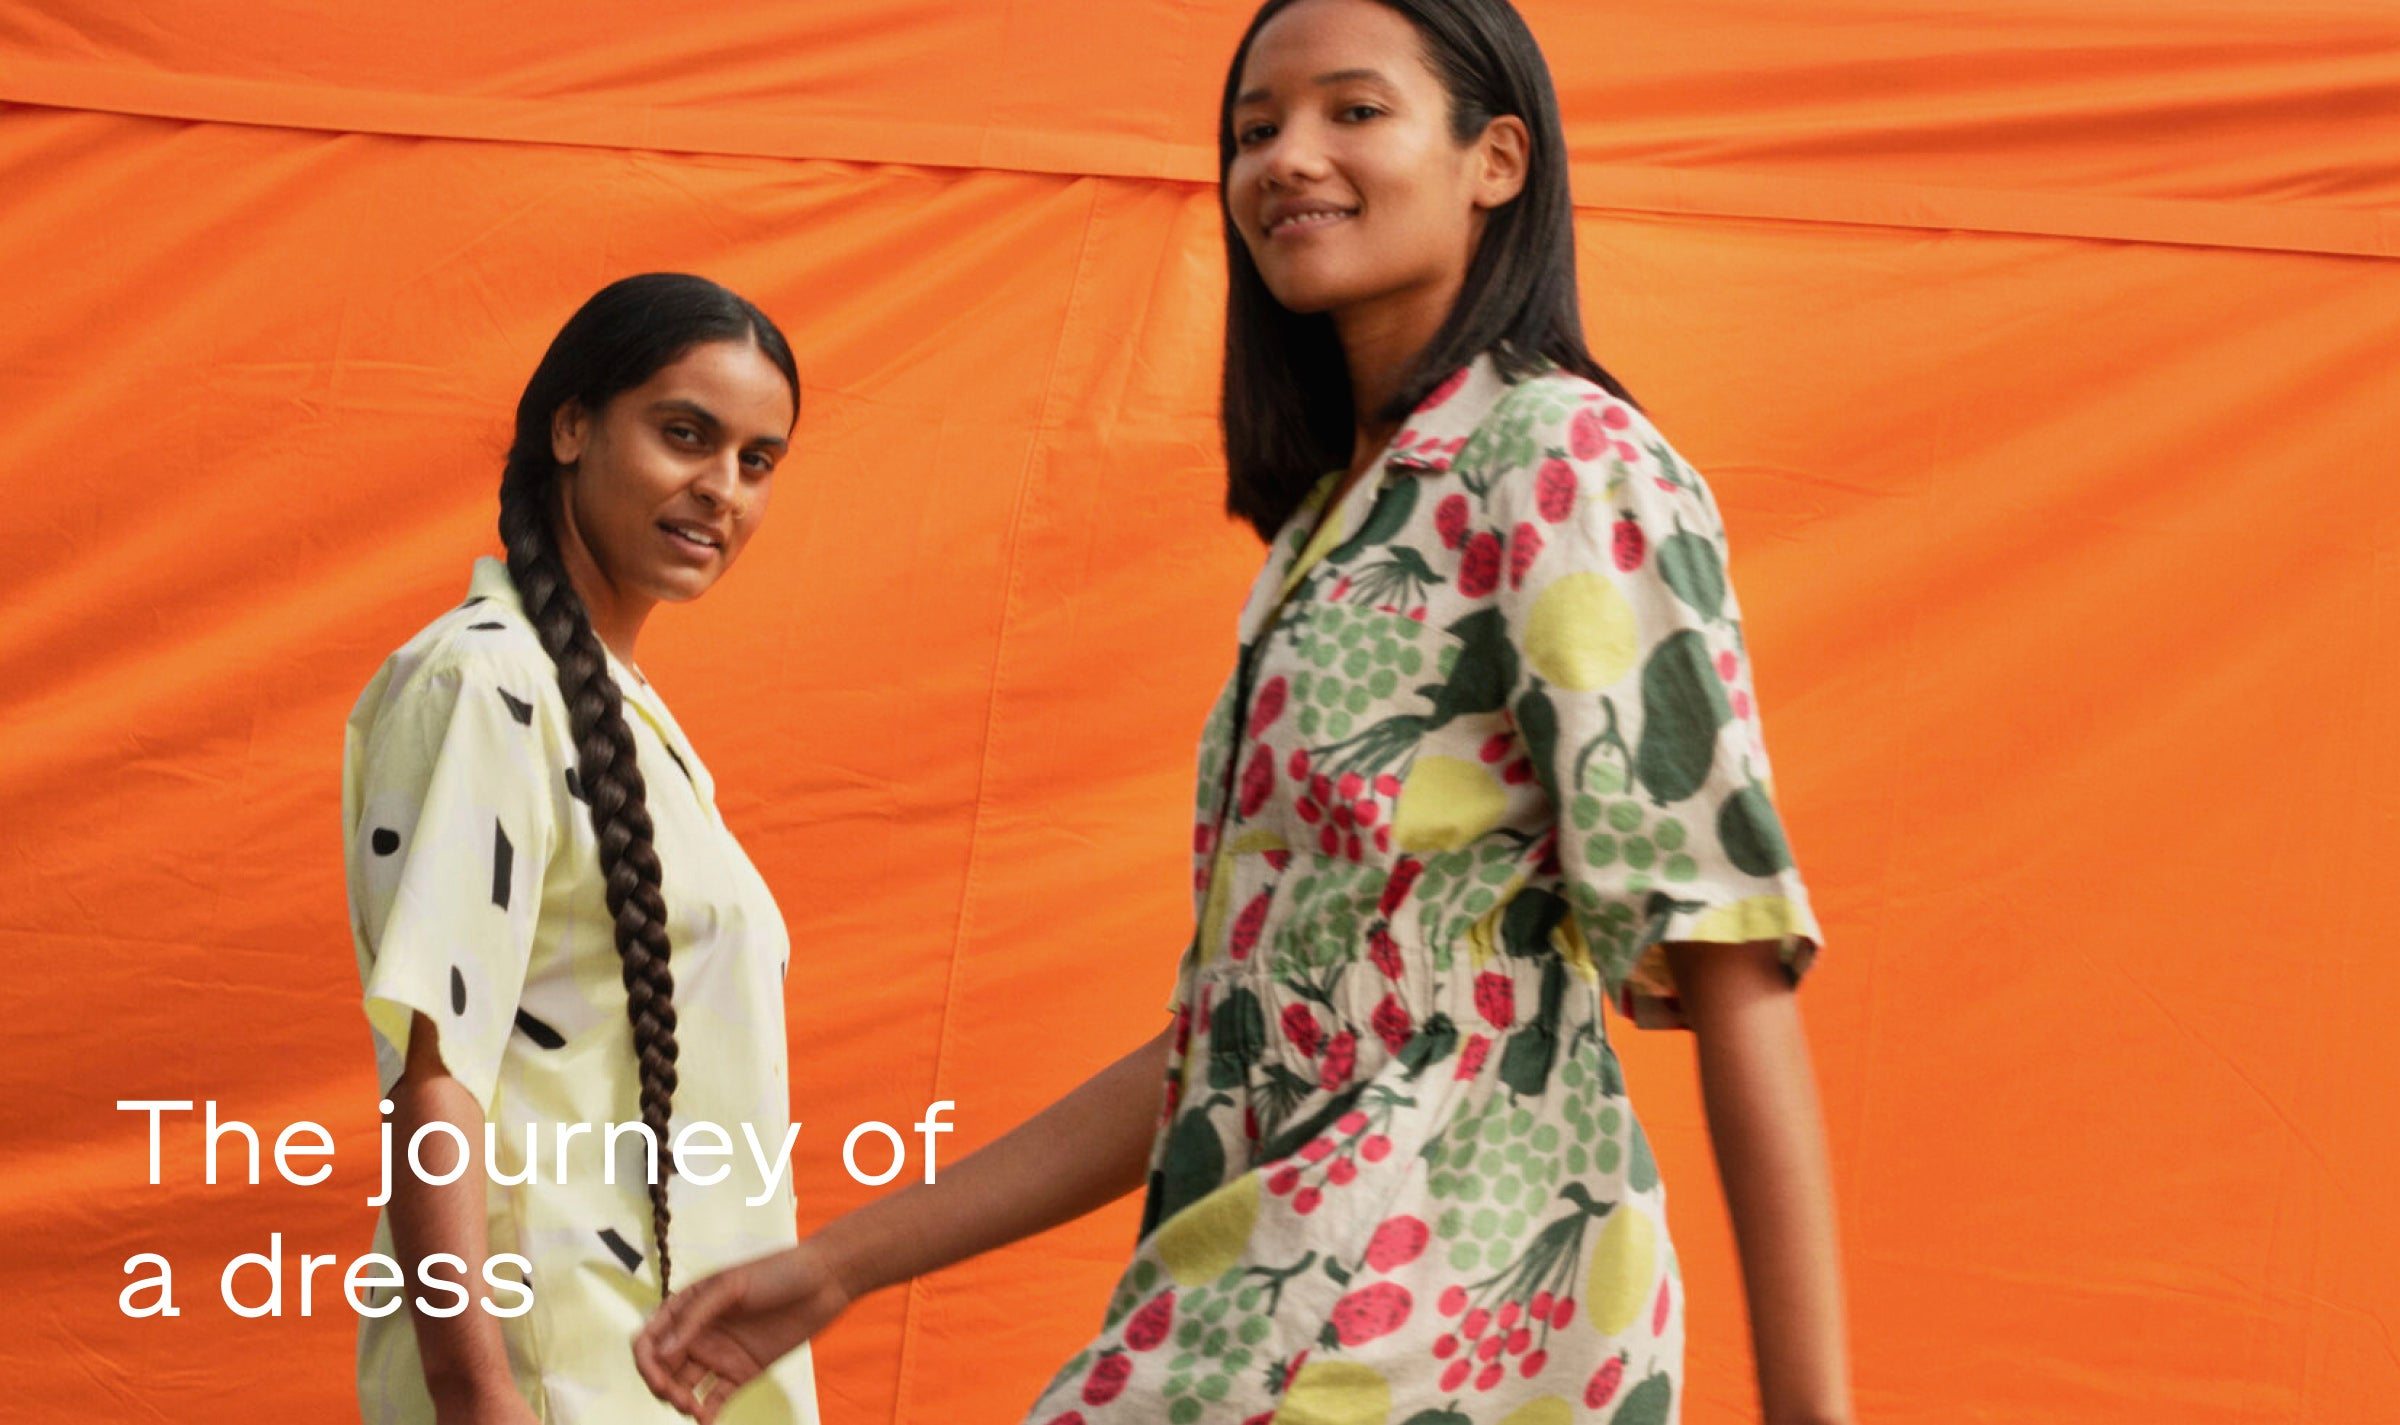 The journey of a dress – Marimekko